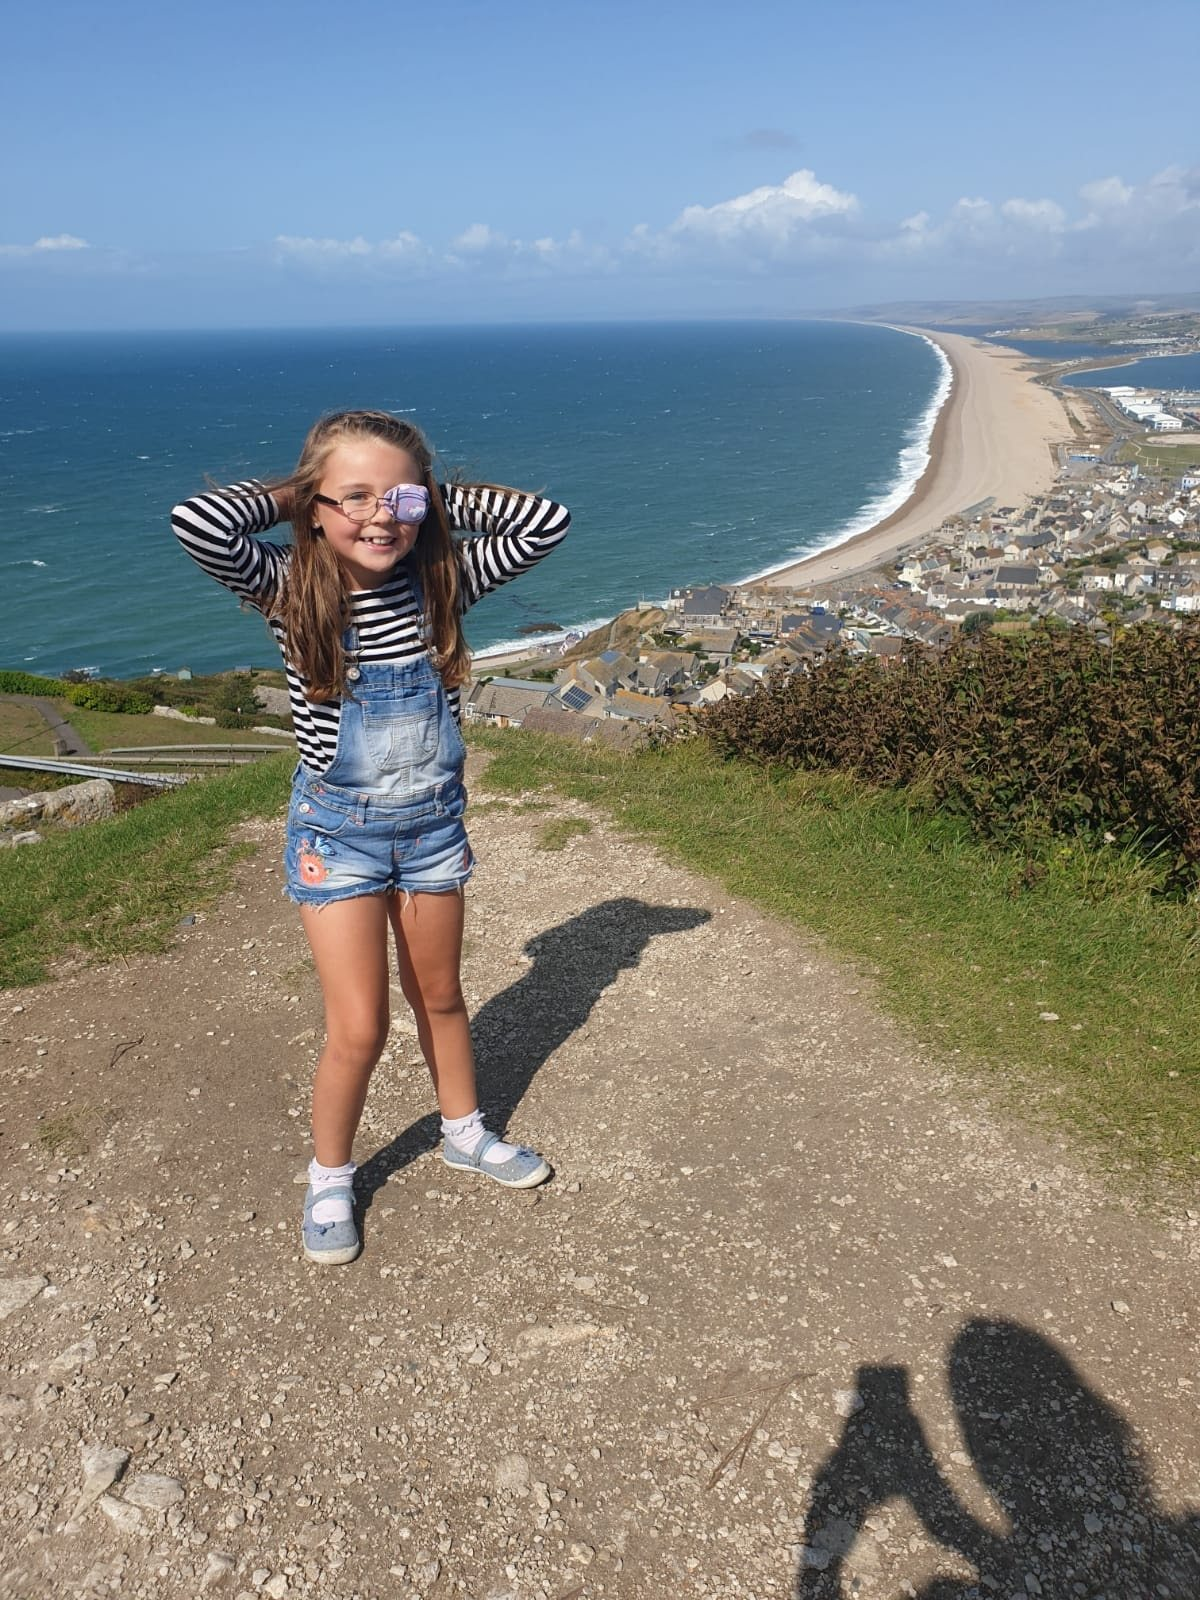 Annabelle was initially ok after the fall, but a few days later she started suffering headaches and was vomiting